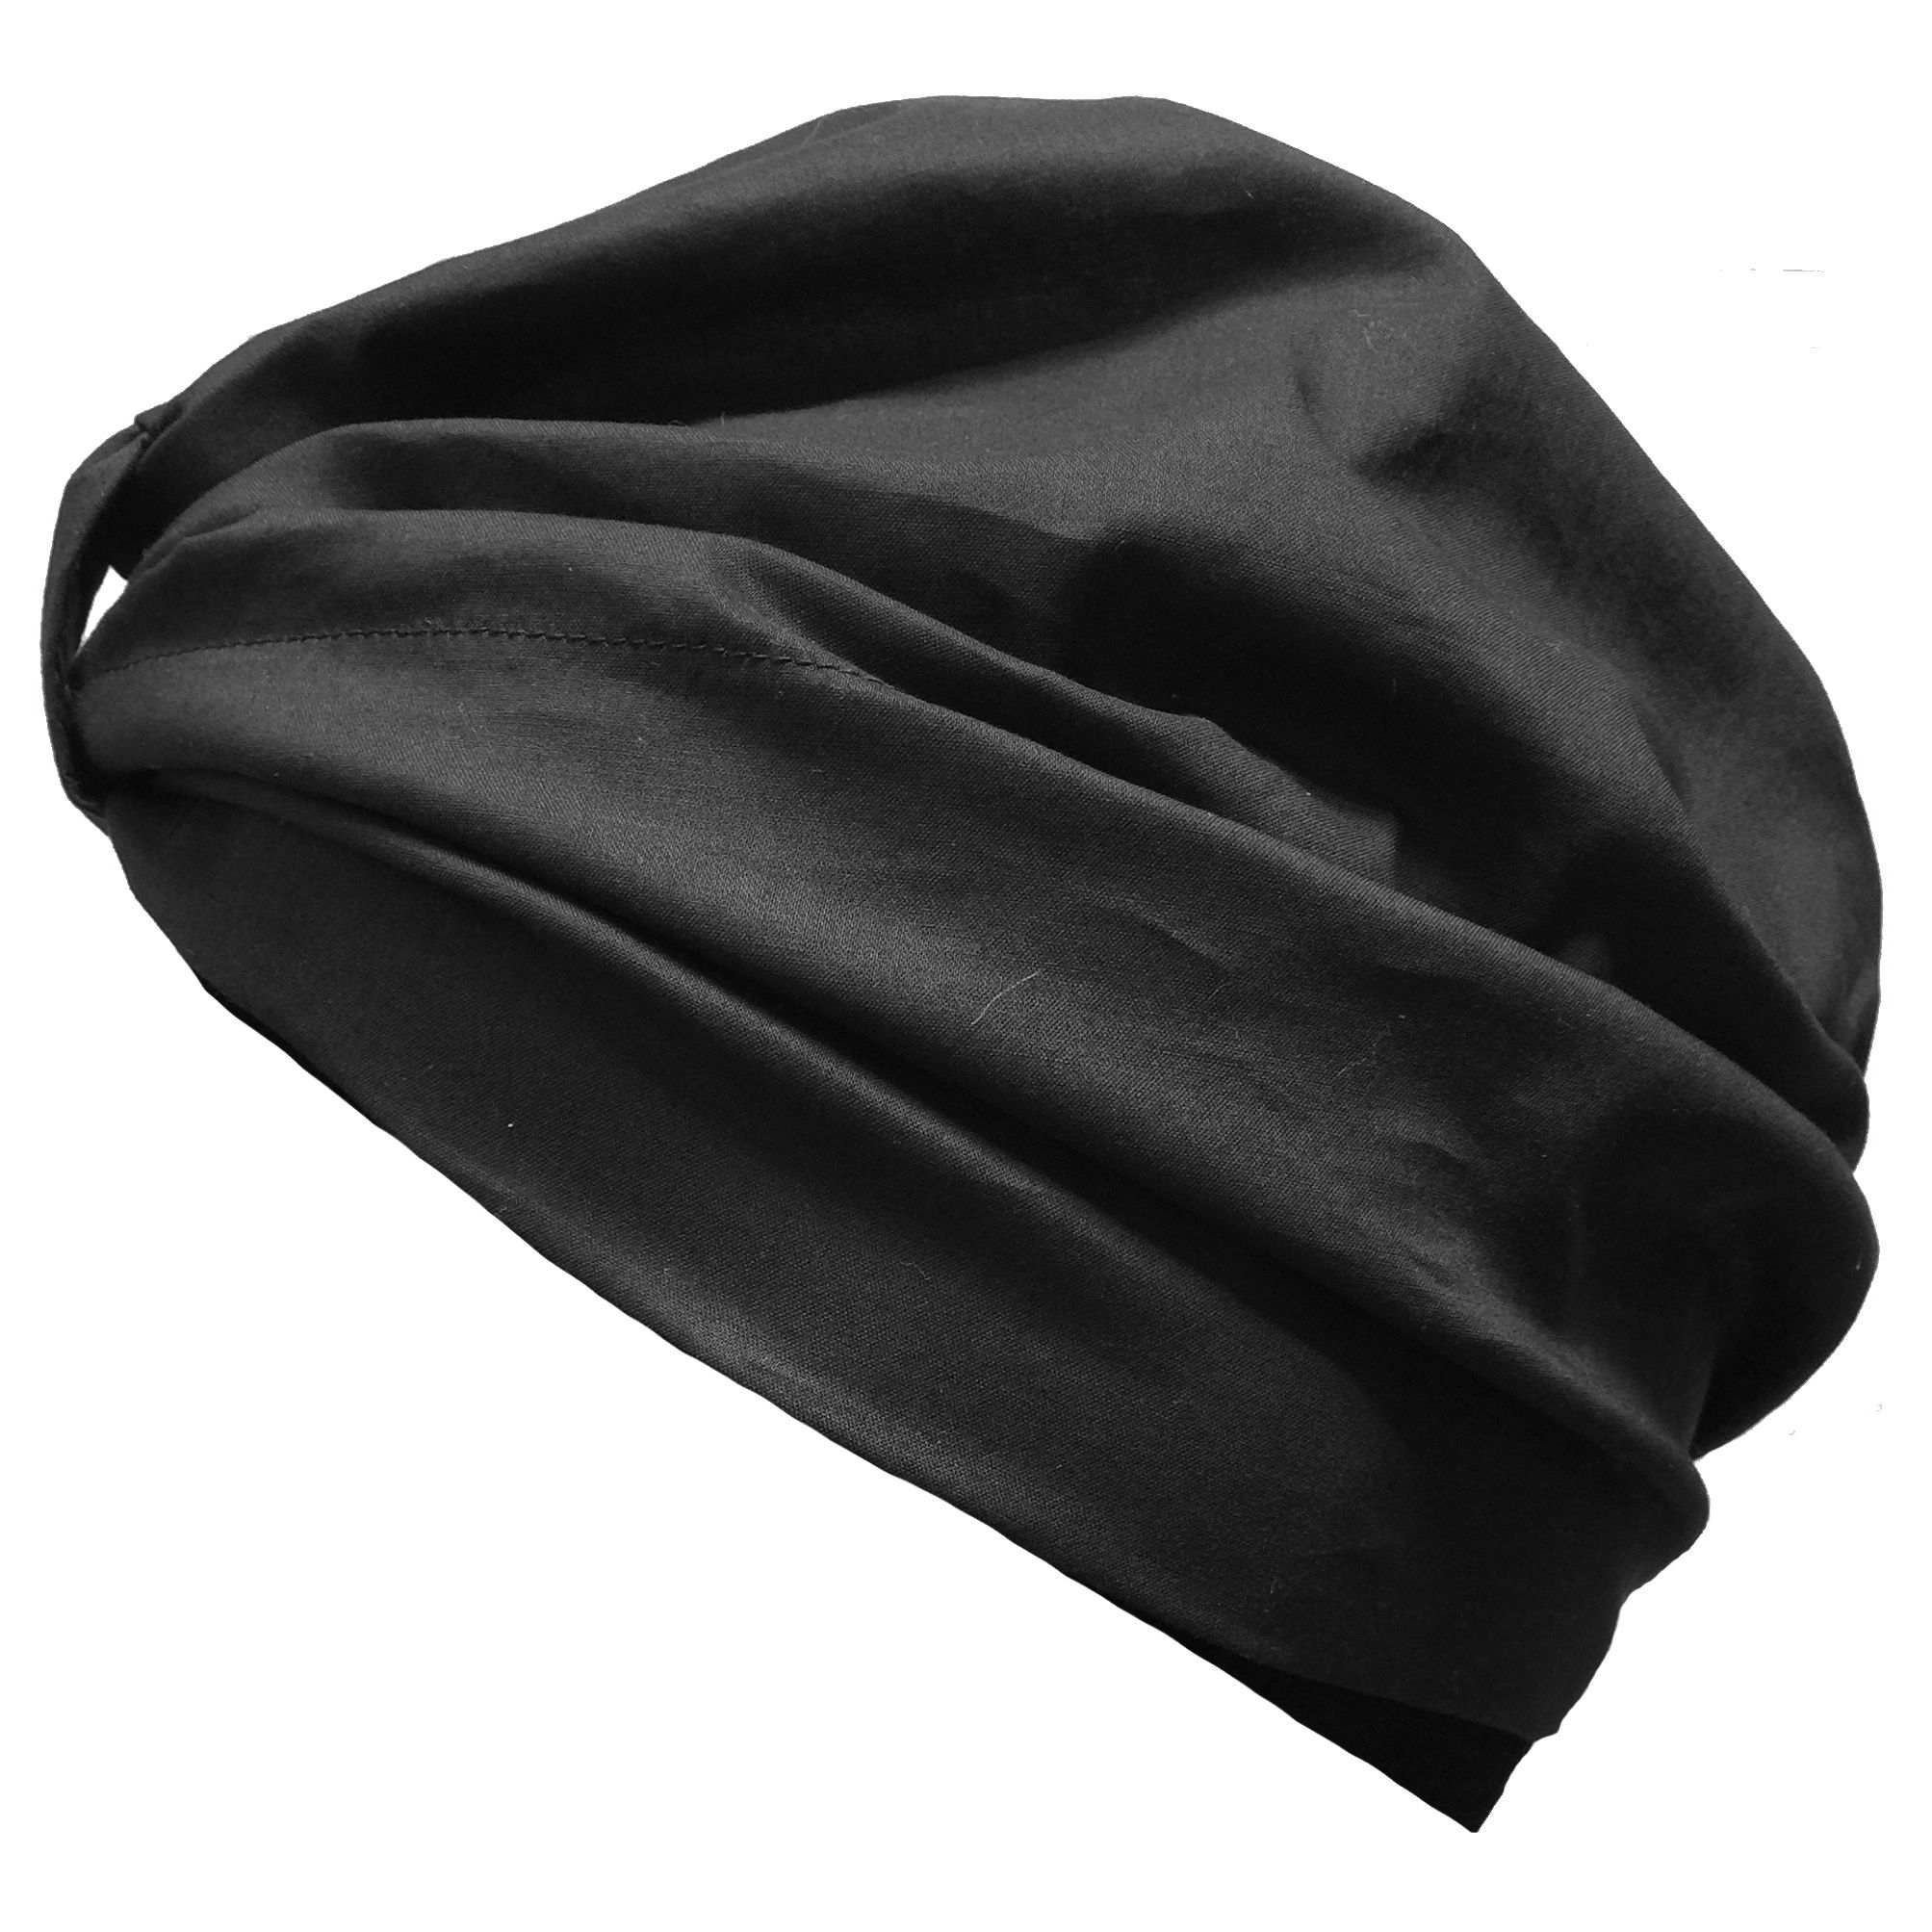 Turban with Front & Back Tie - Black